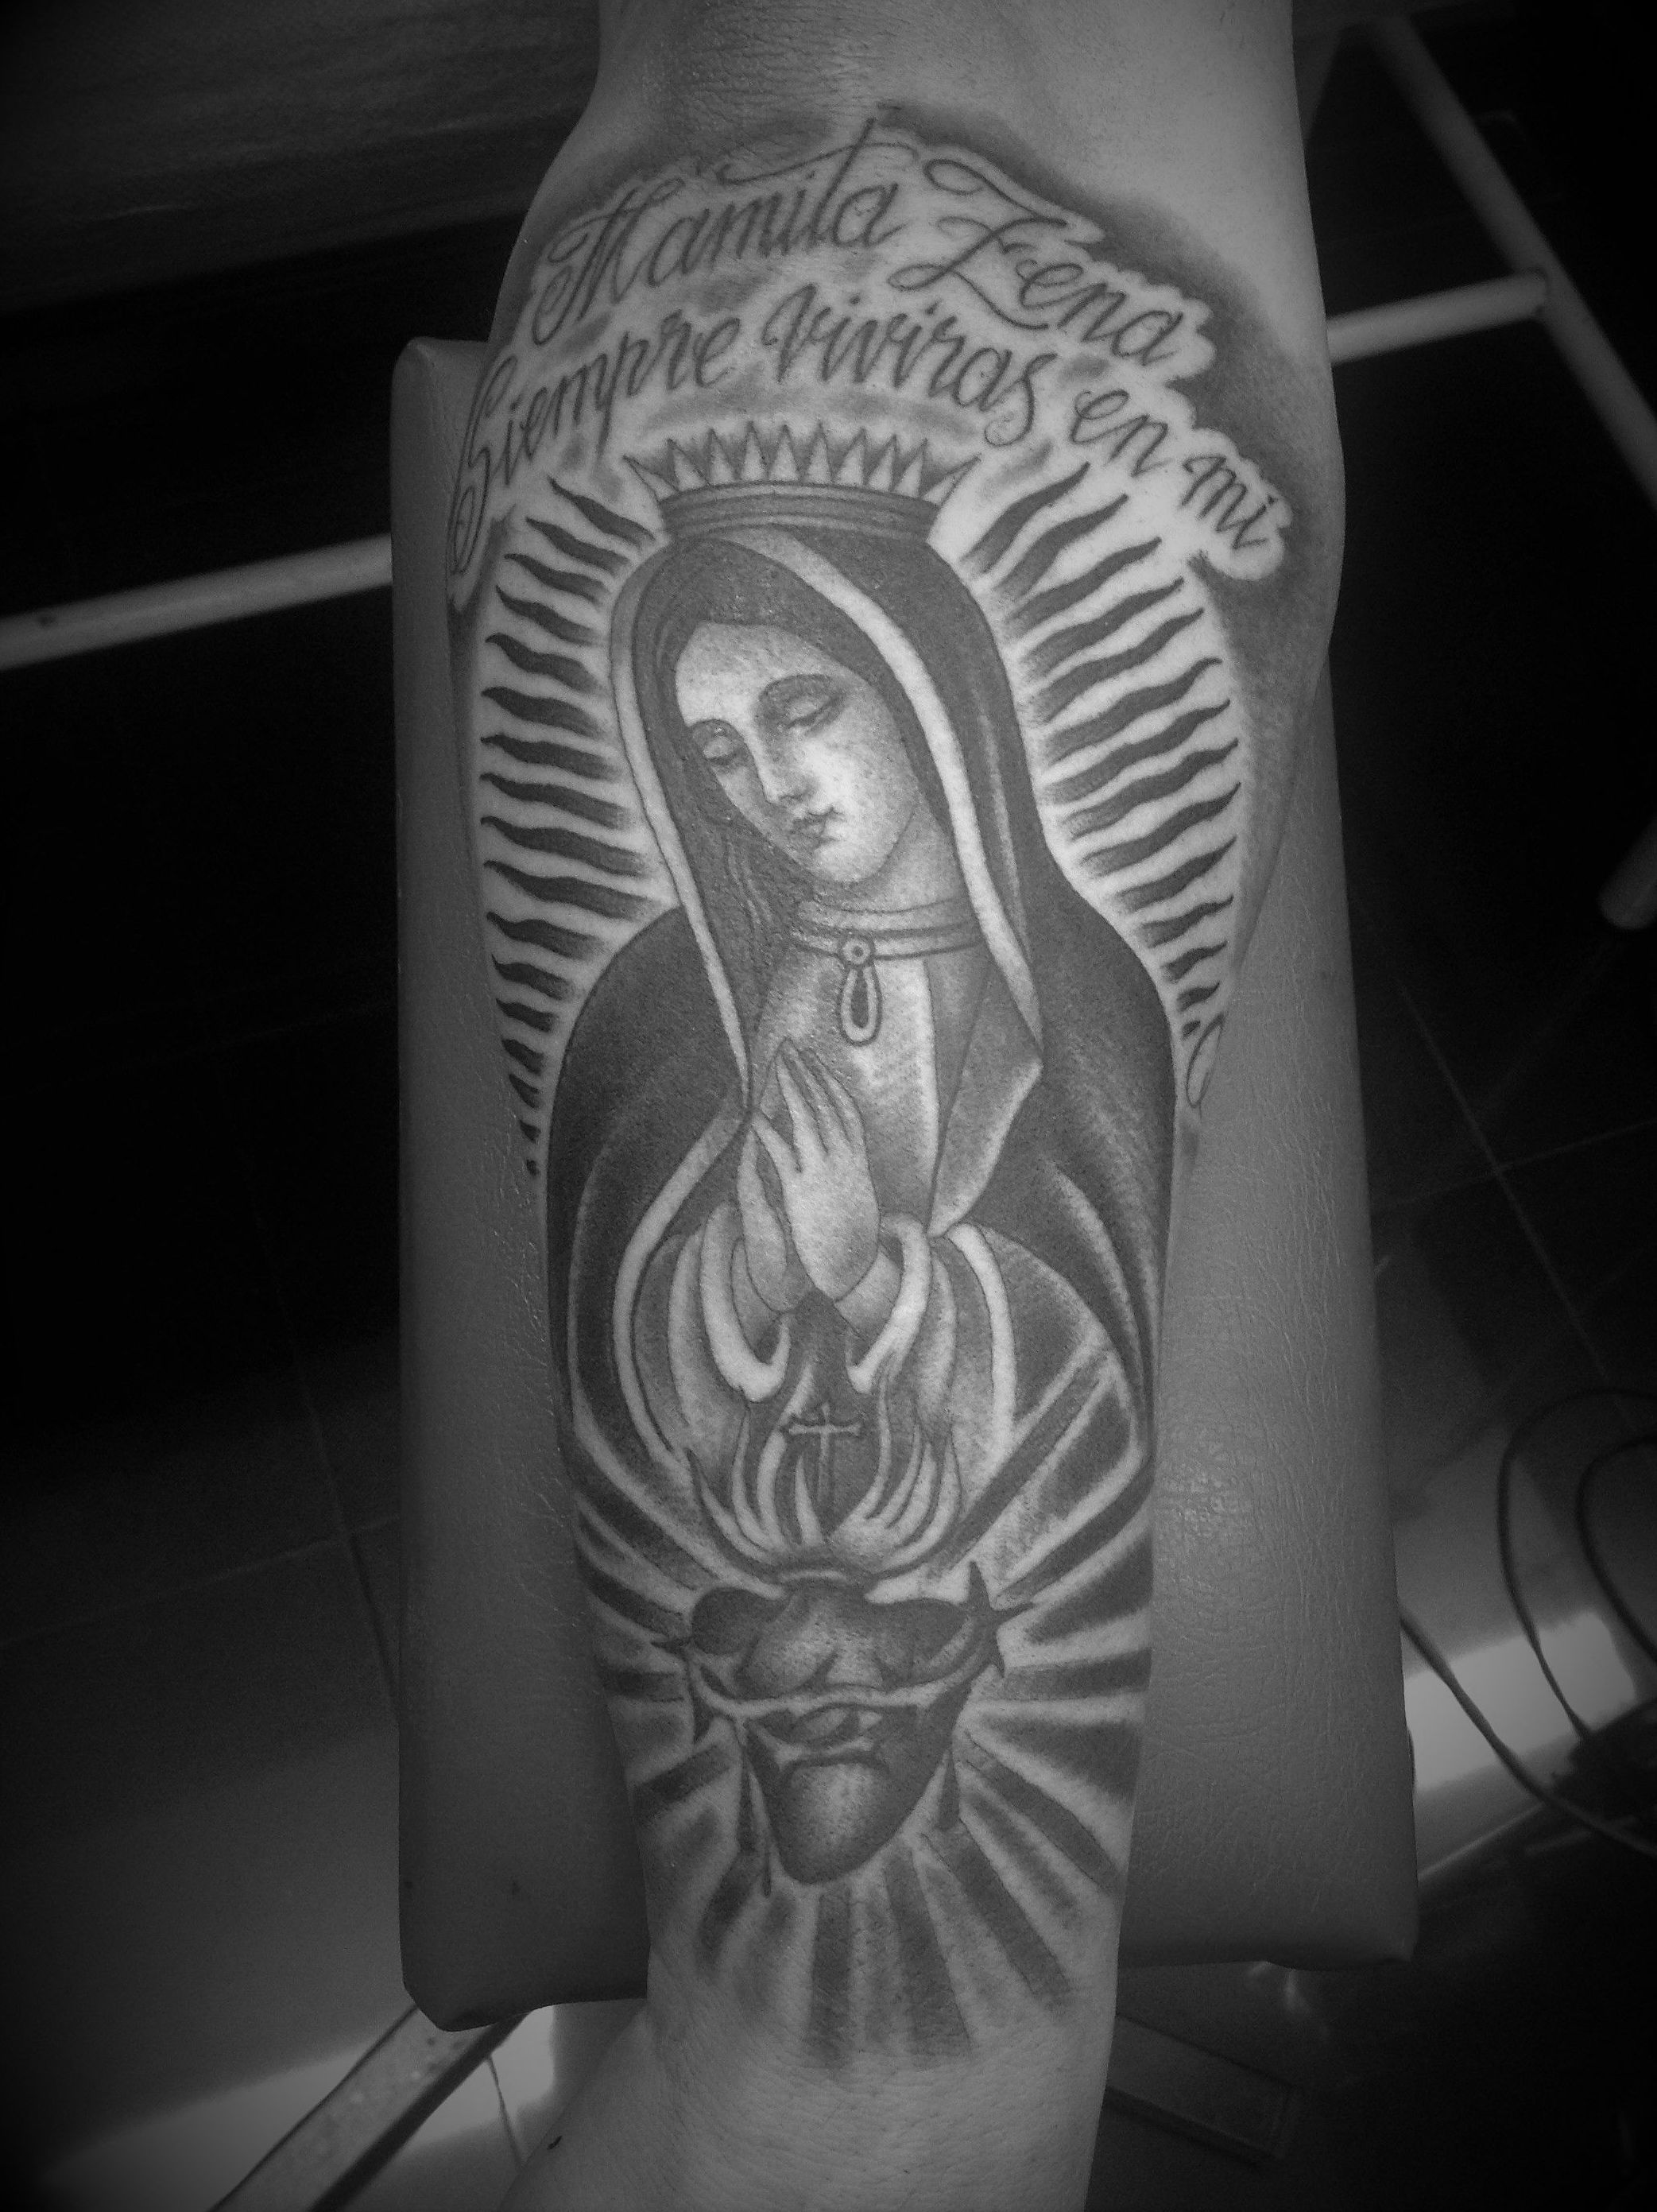 Foto 9 de Tatuajes en Madrid | True Love Tattoo